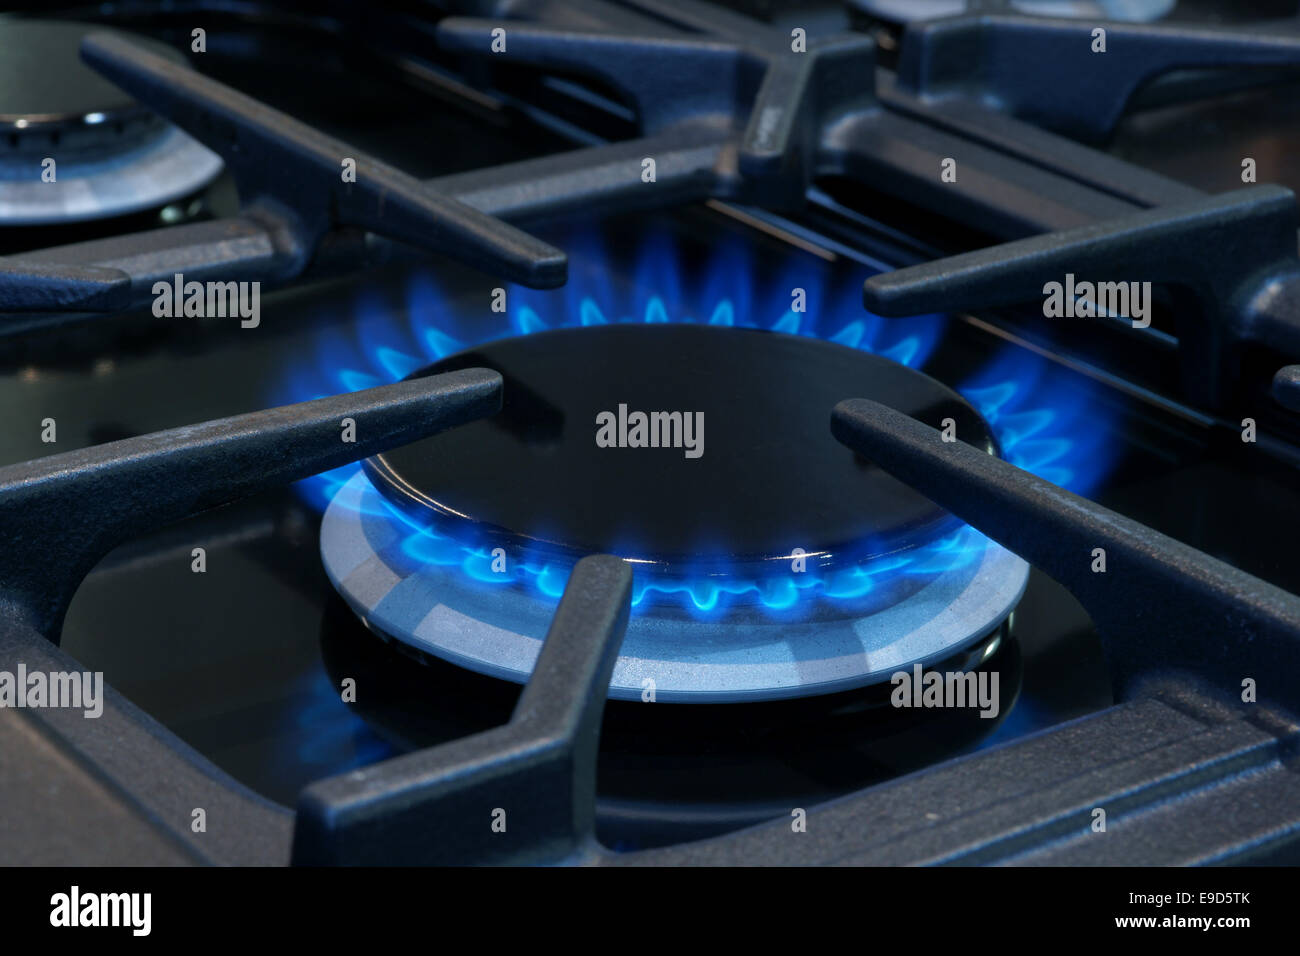 Gas burner on a domestic cooker or stove - Stock Image